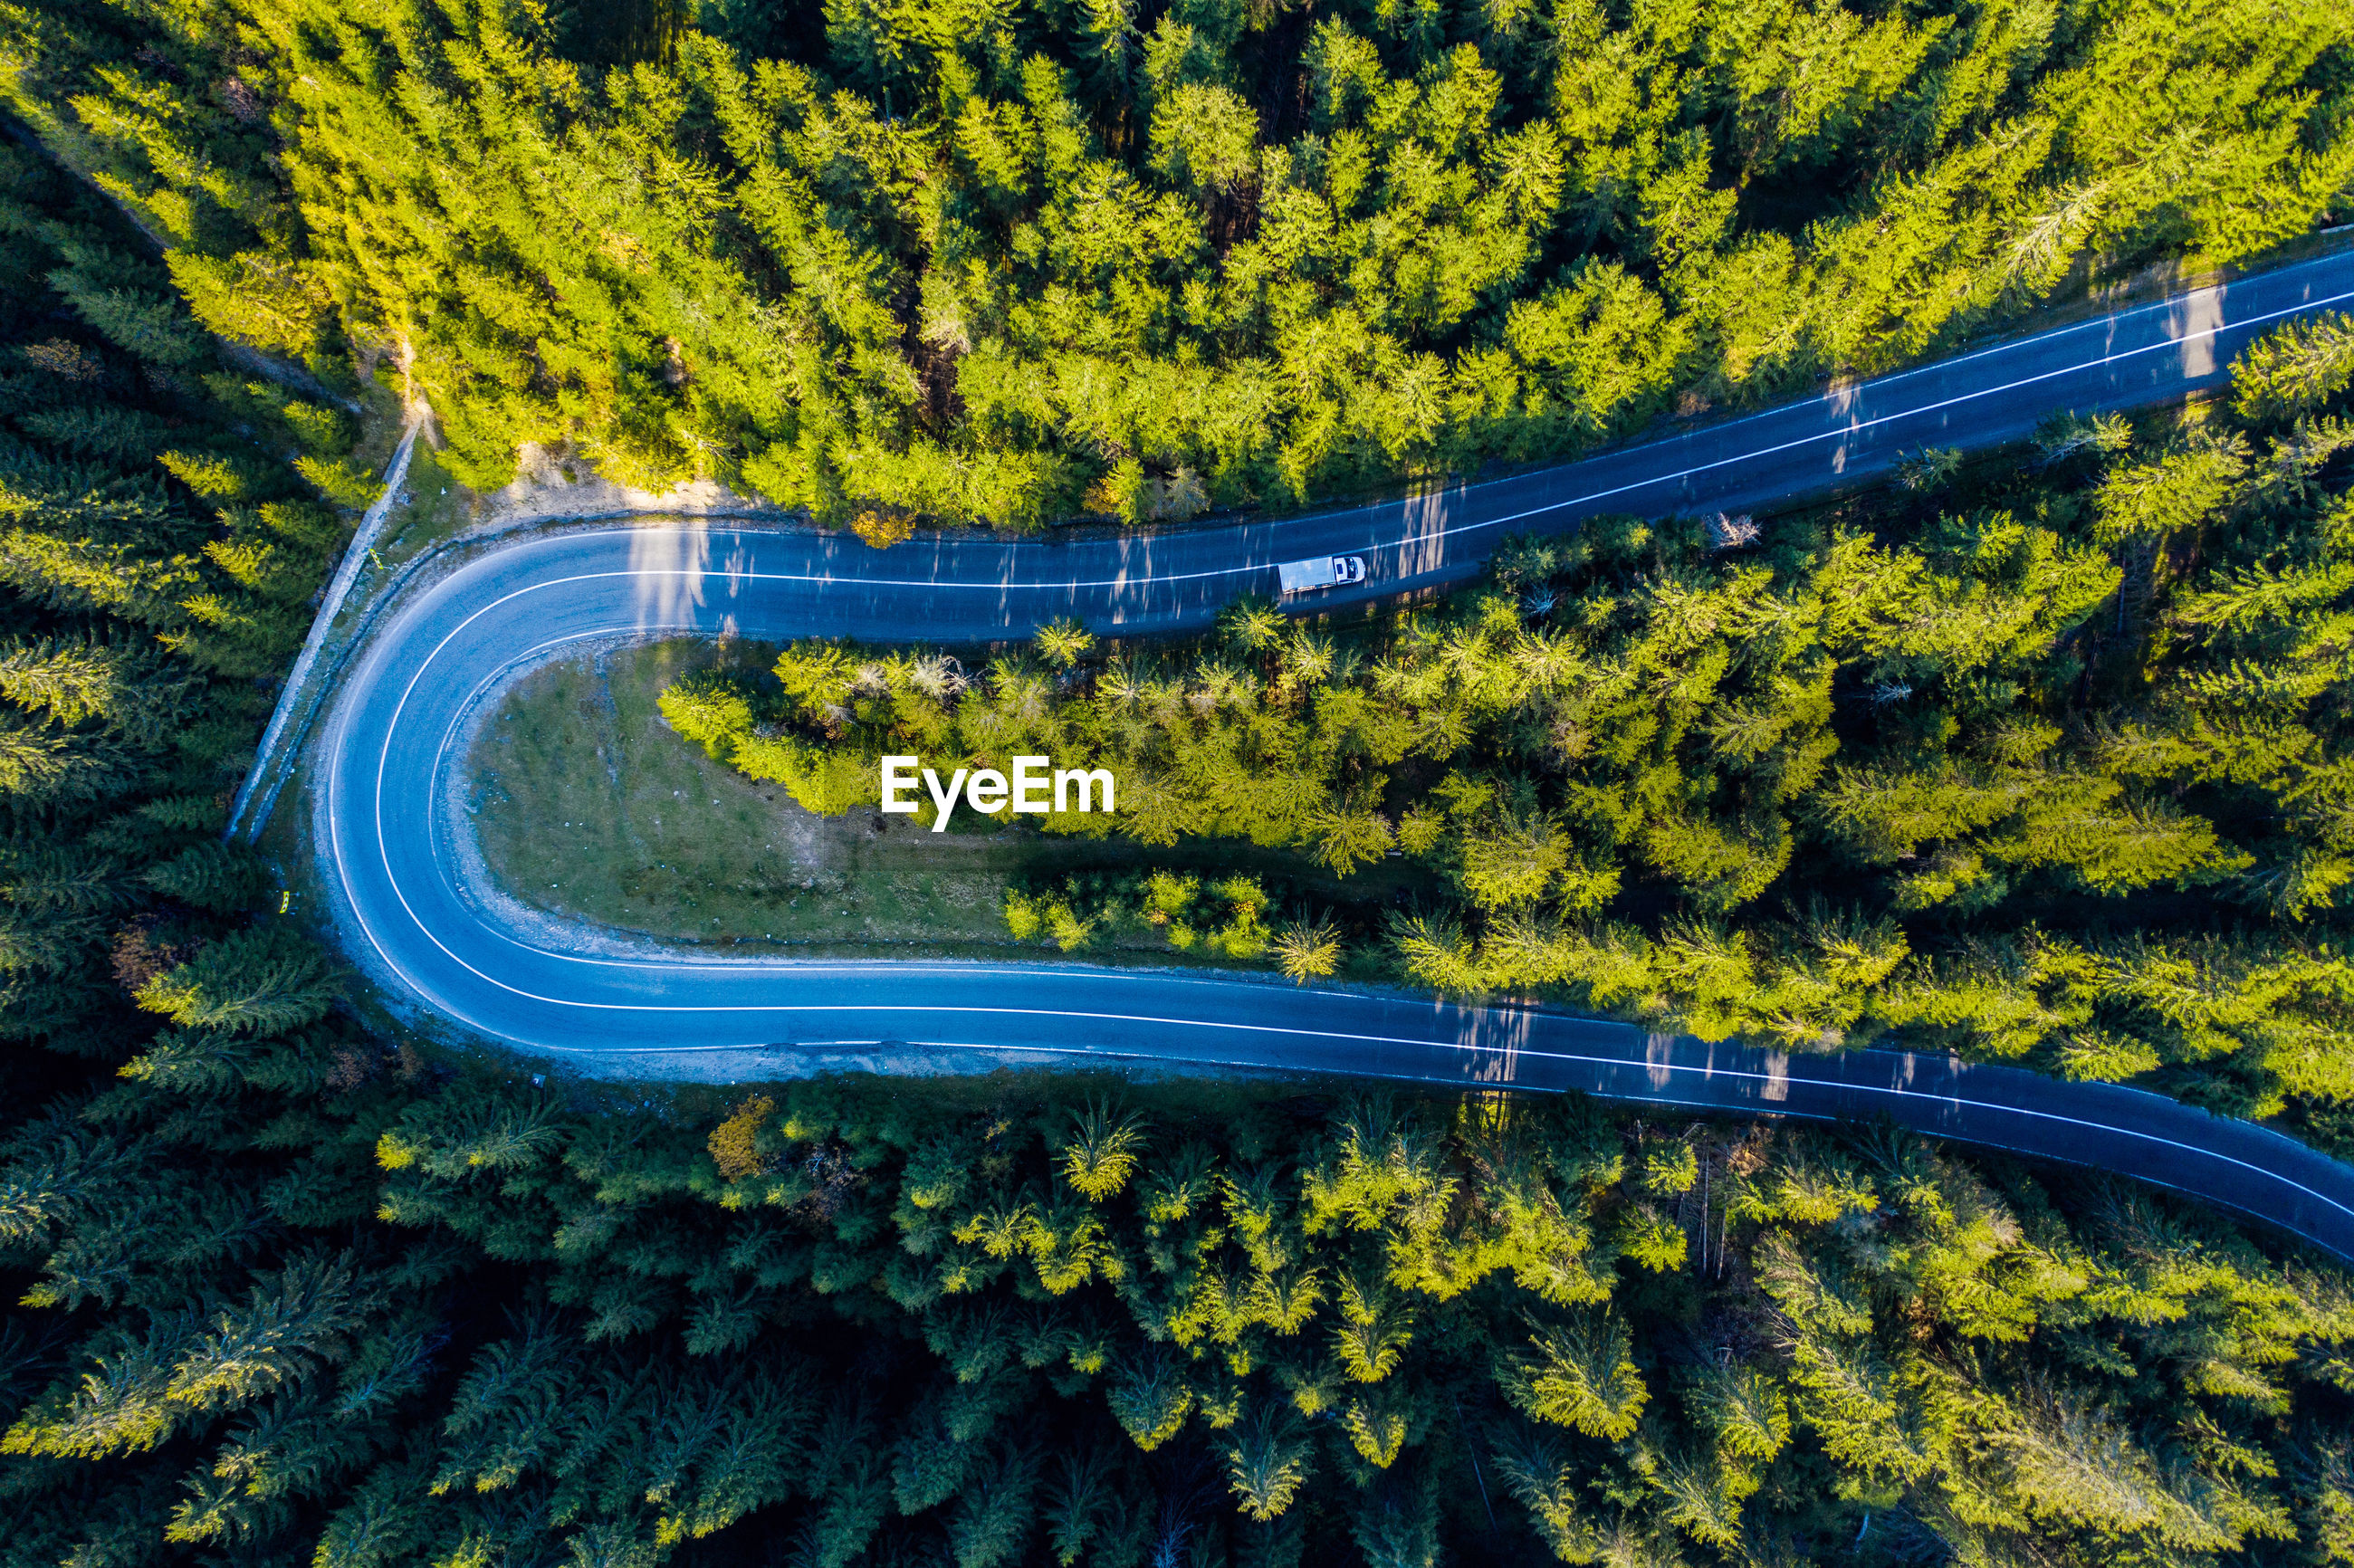 Directly above shot of road amidst trees in forest